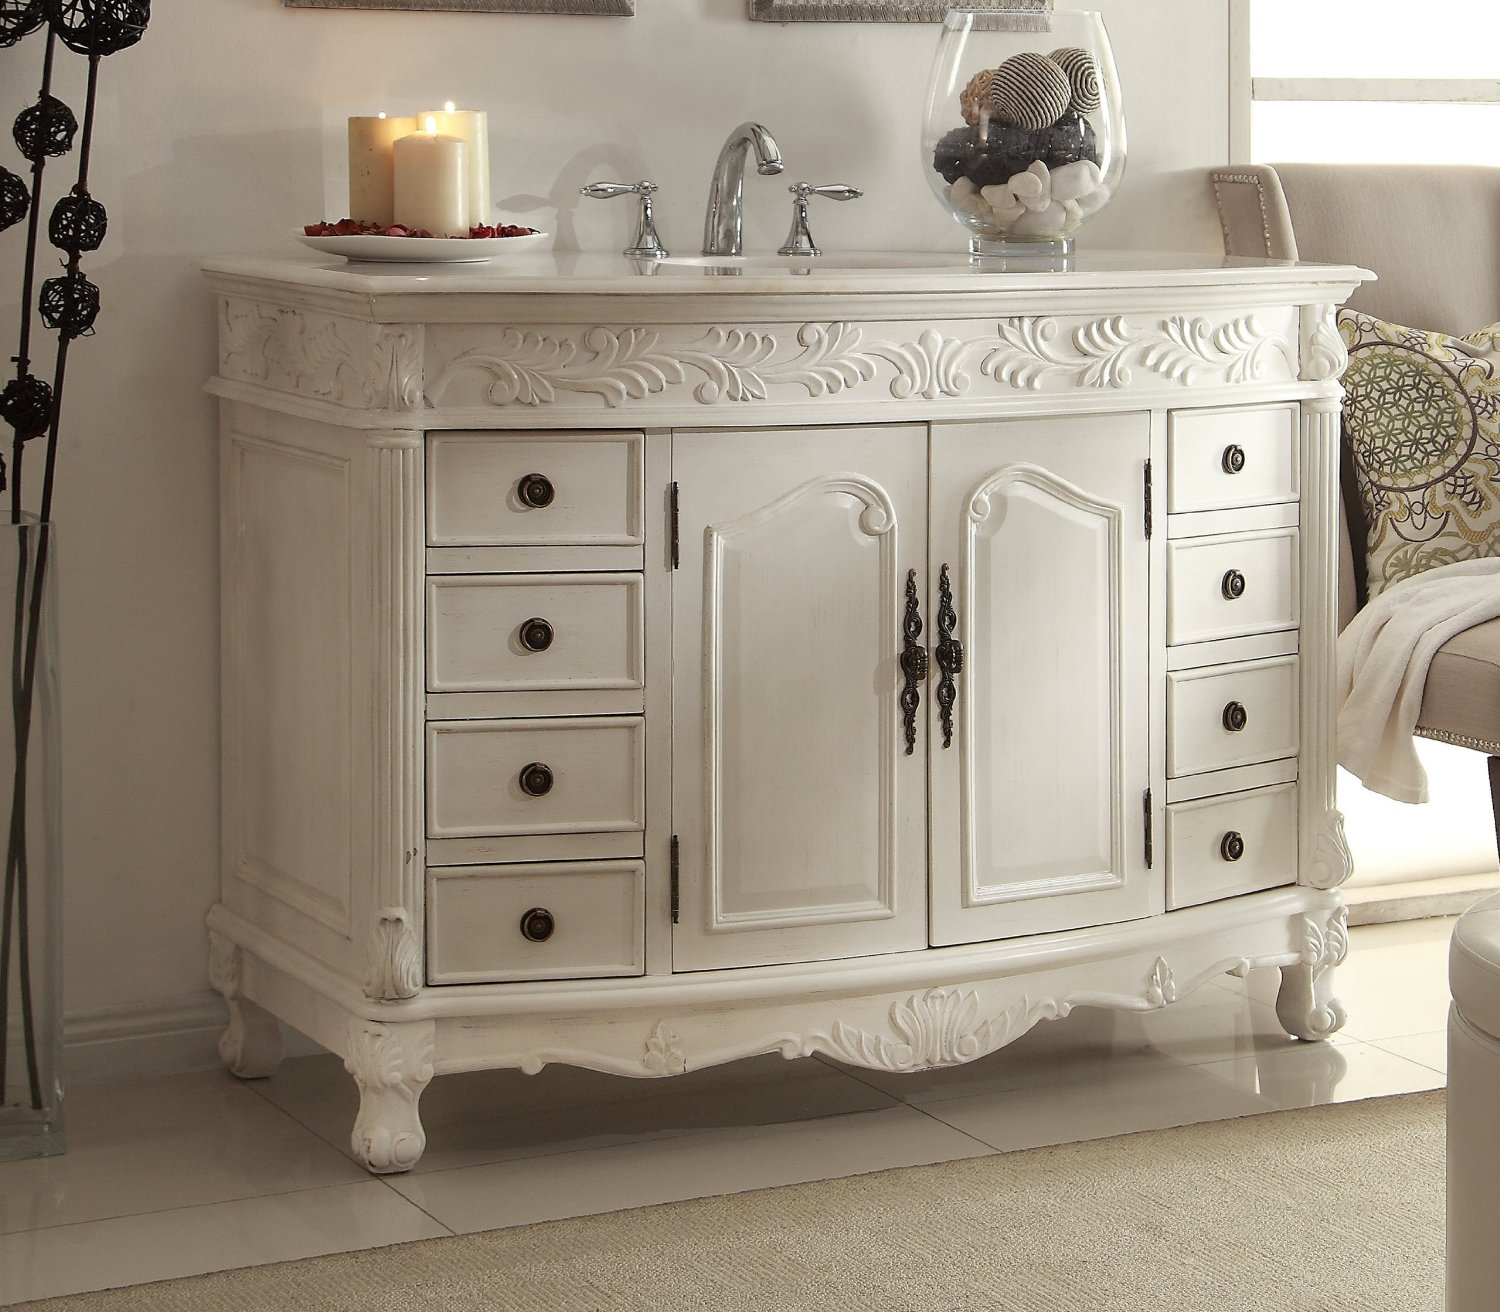 adelina 48 inch antique white bathroom vanity - White Bathroom Cabinets And Vanities